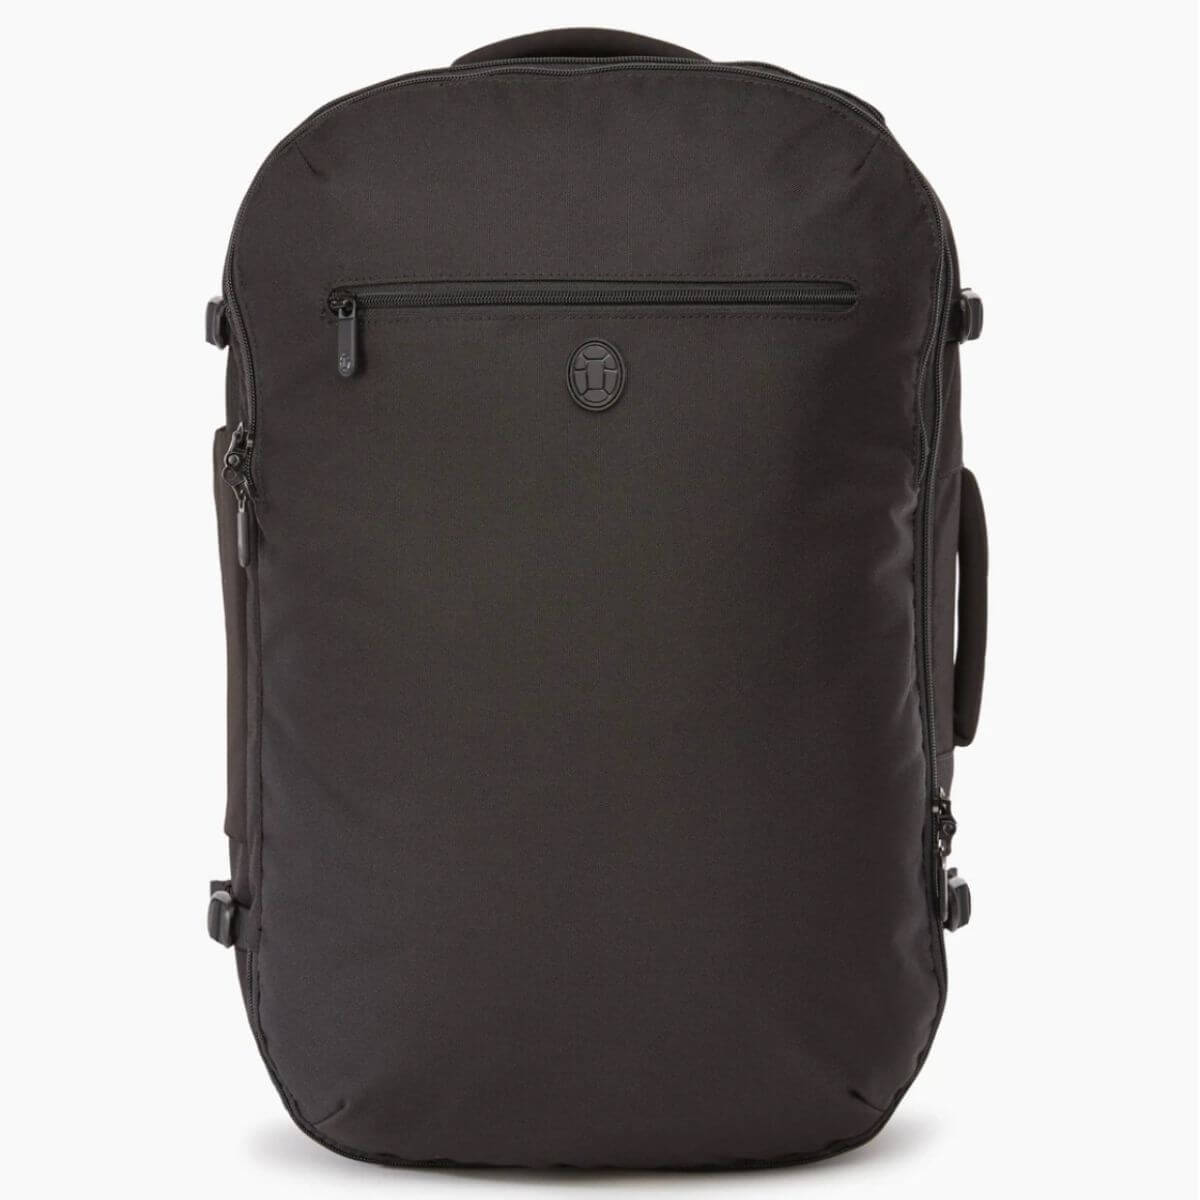 Black Tortuga polyester backpack.